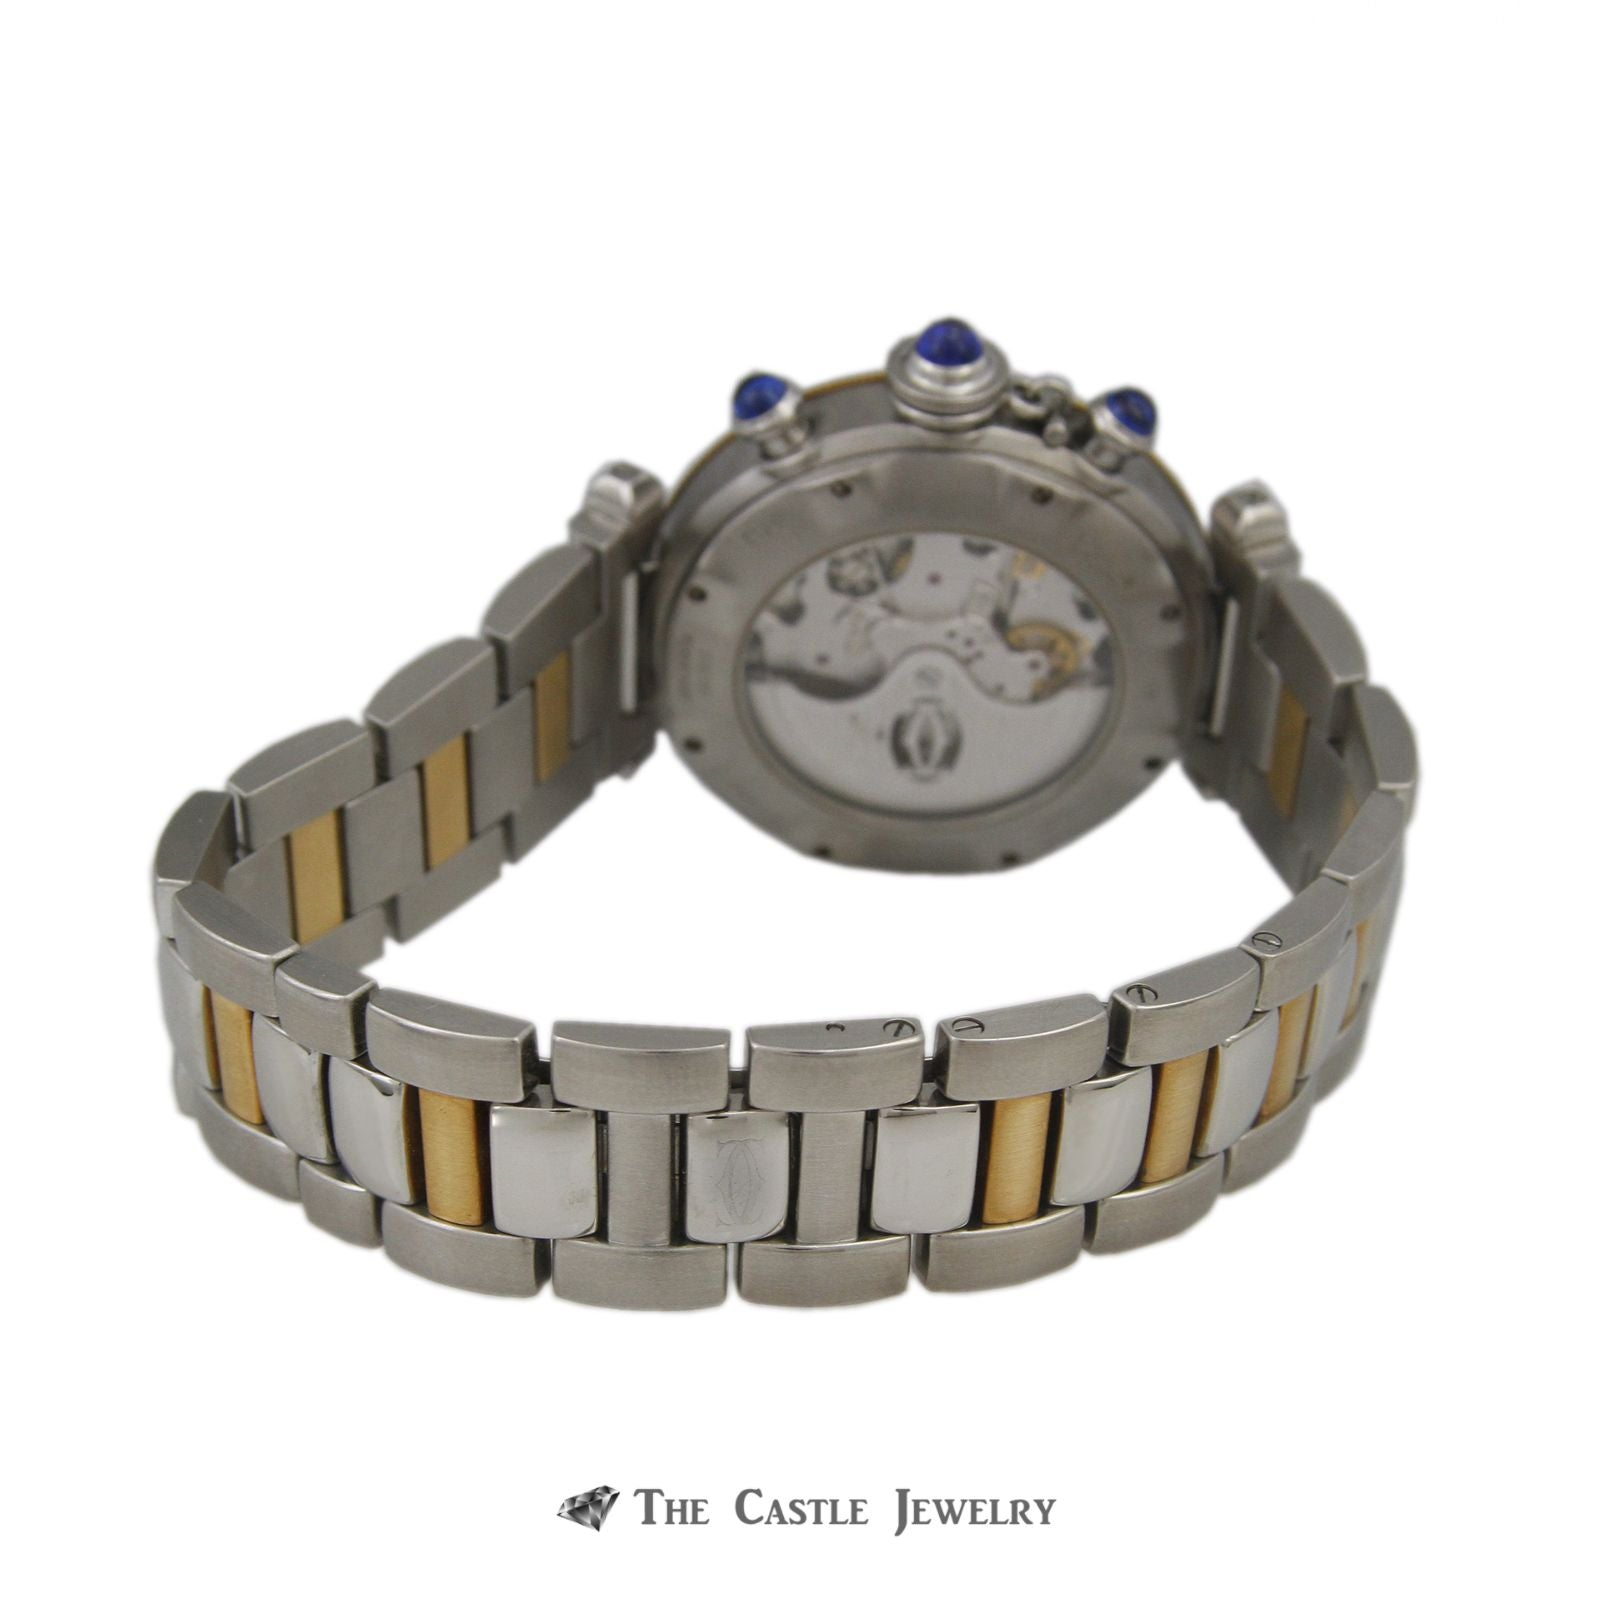 Cartier Pasha de Cartier Watch 18K & Steel 38mm Chronograph Ref. 2113-1